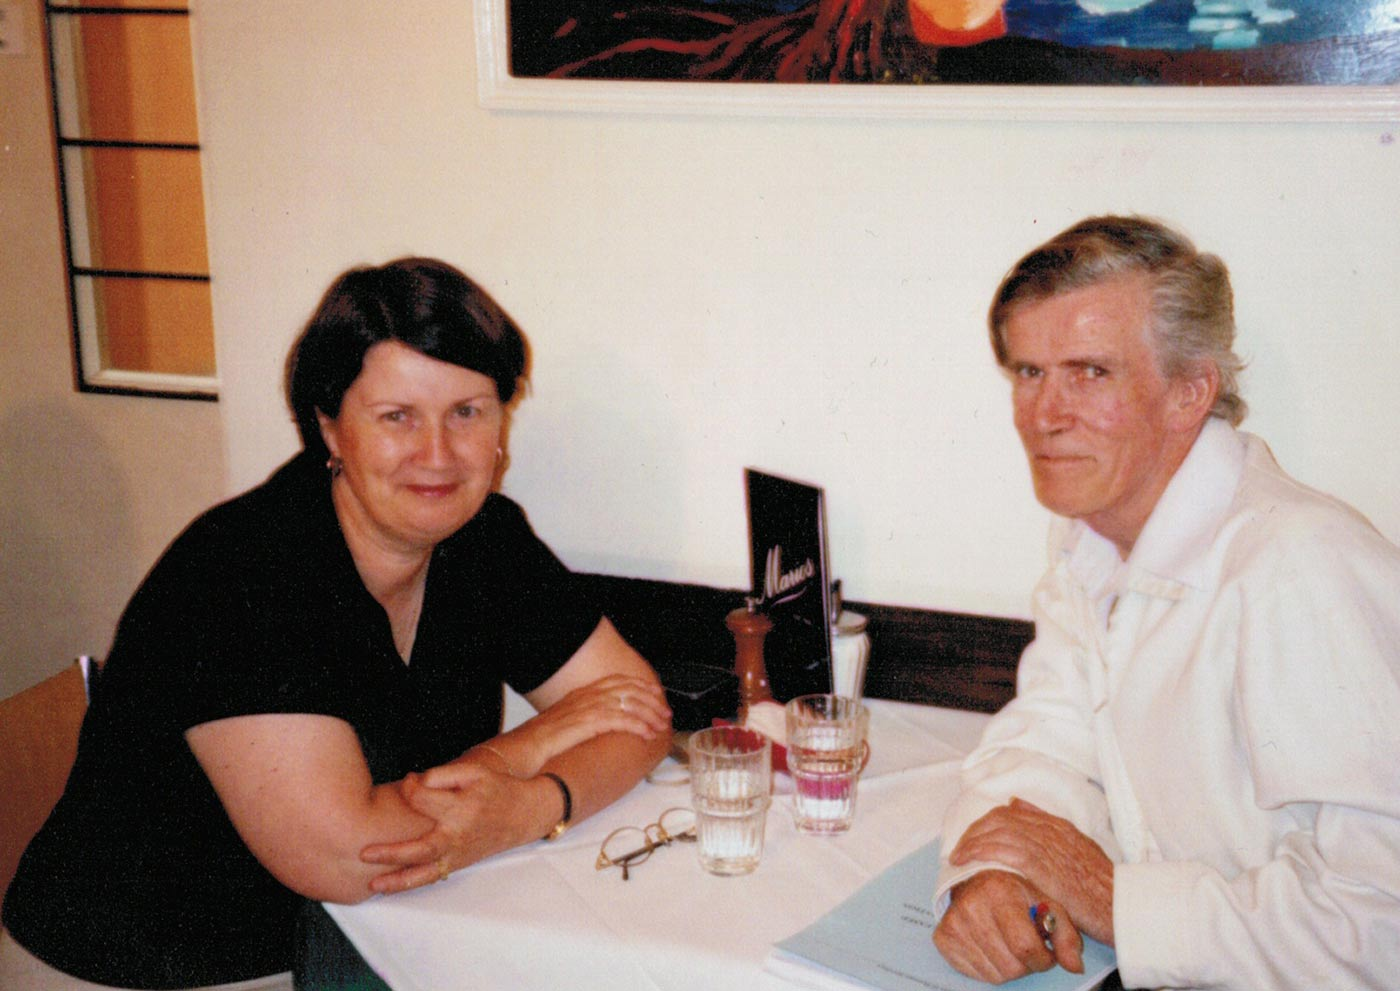 Colour photograph showing a man and woman sitting at a dining table. - click to view larger image